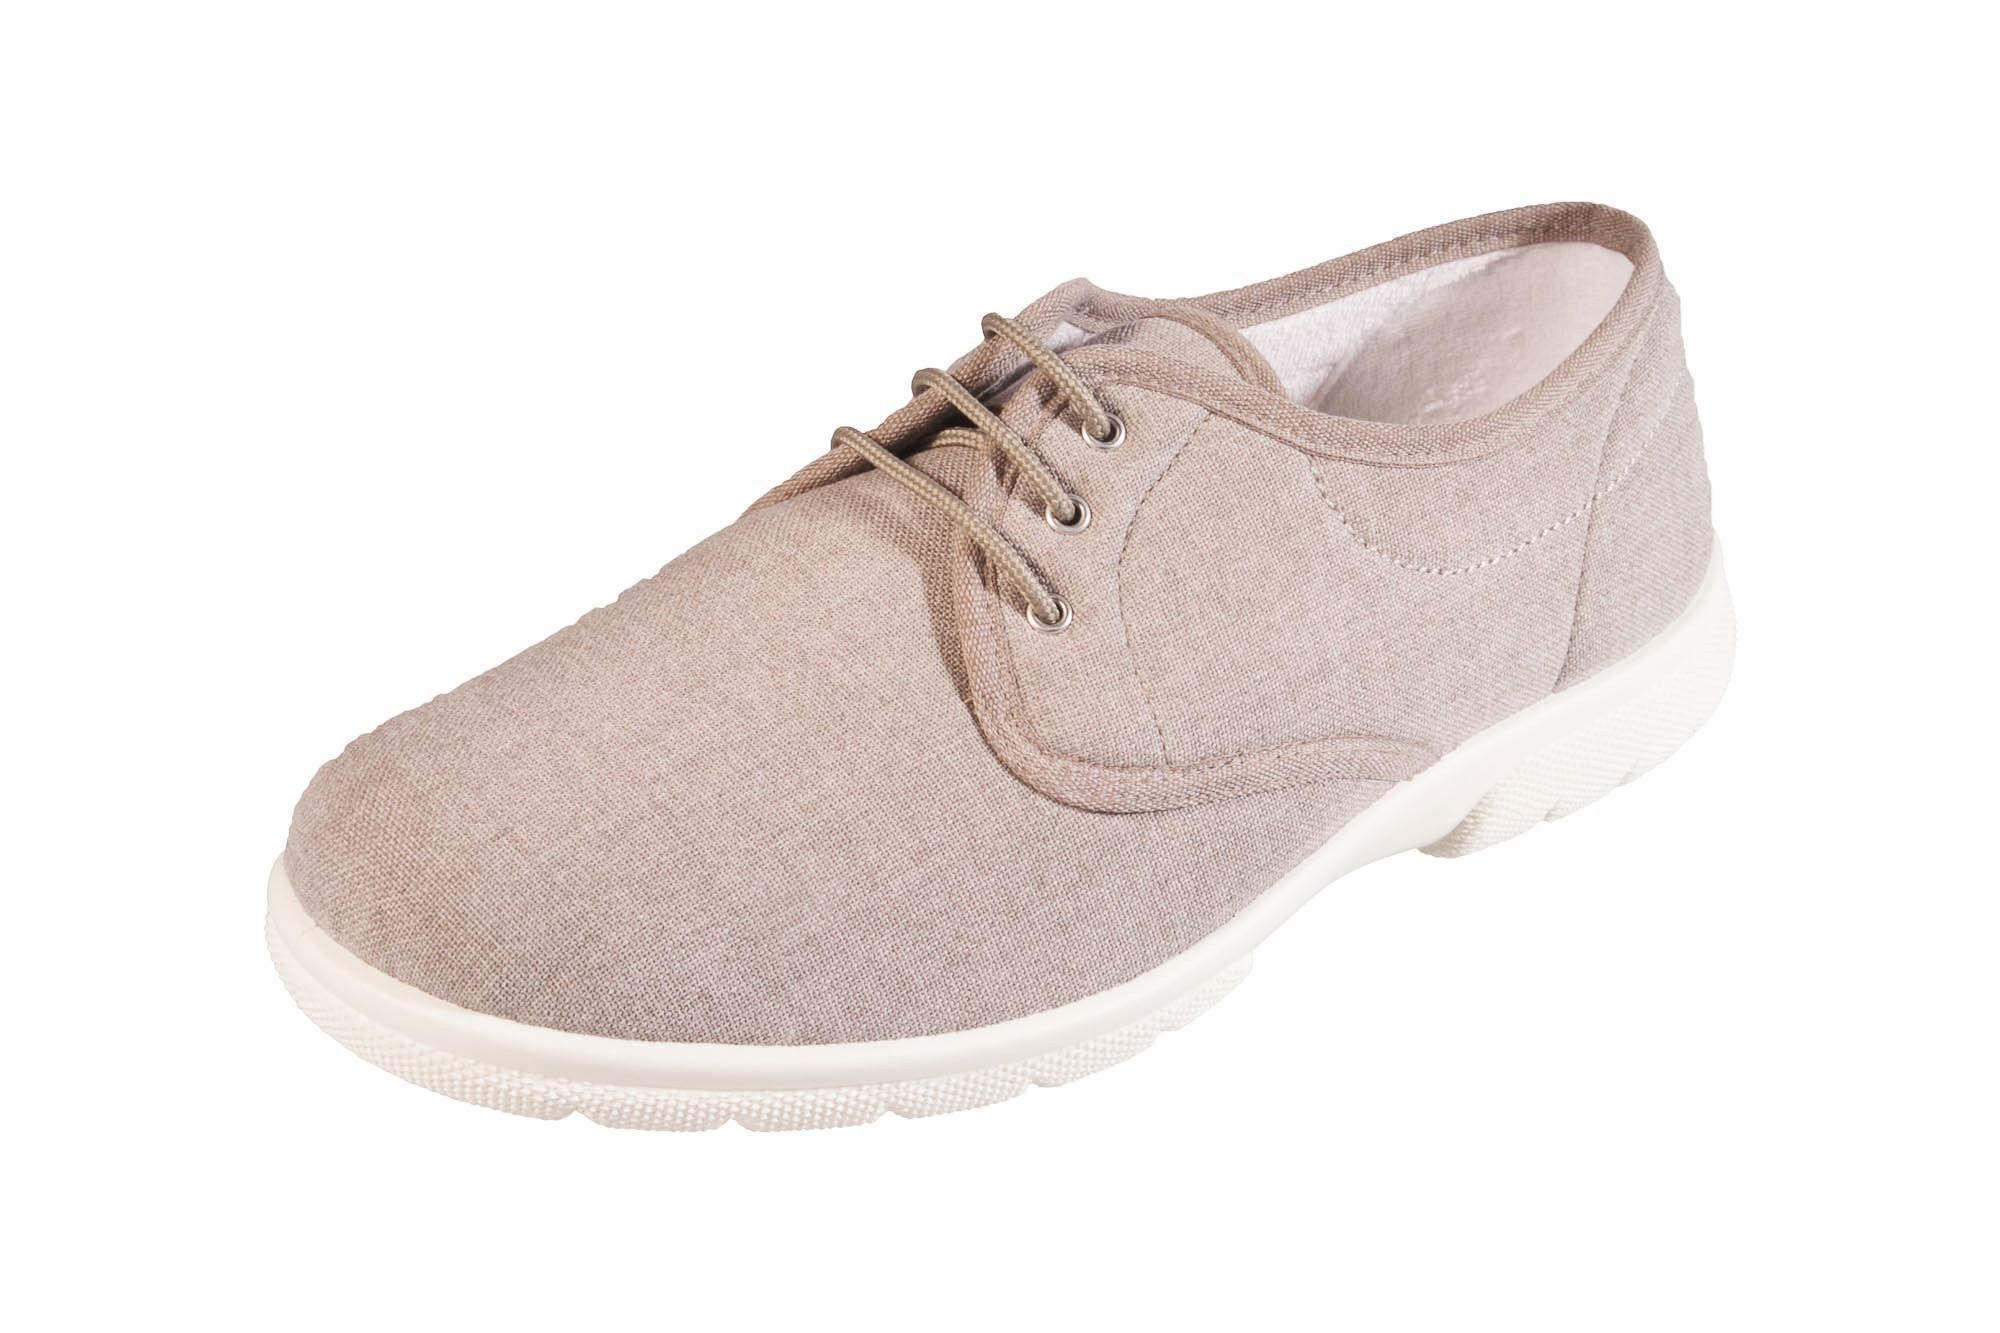 Latest product - Troon Canvas Shoes